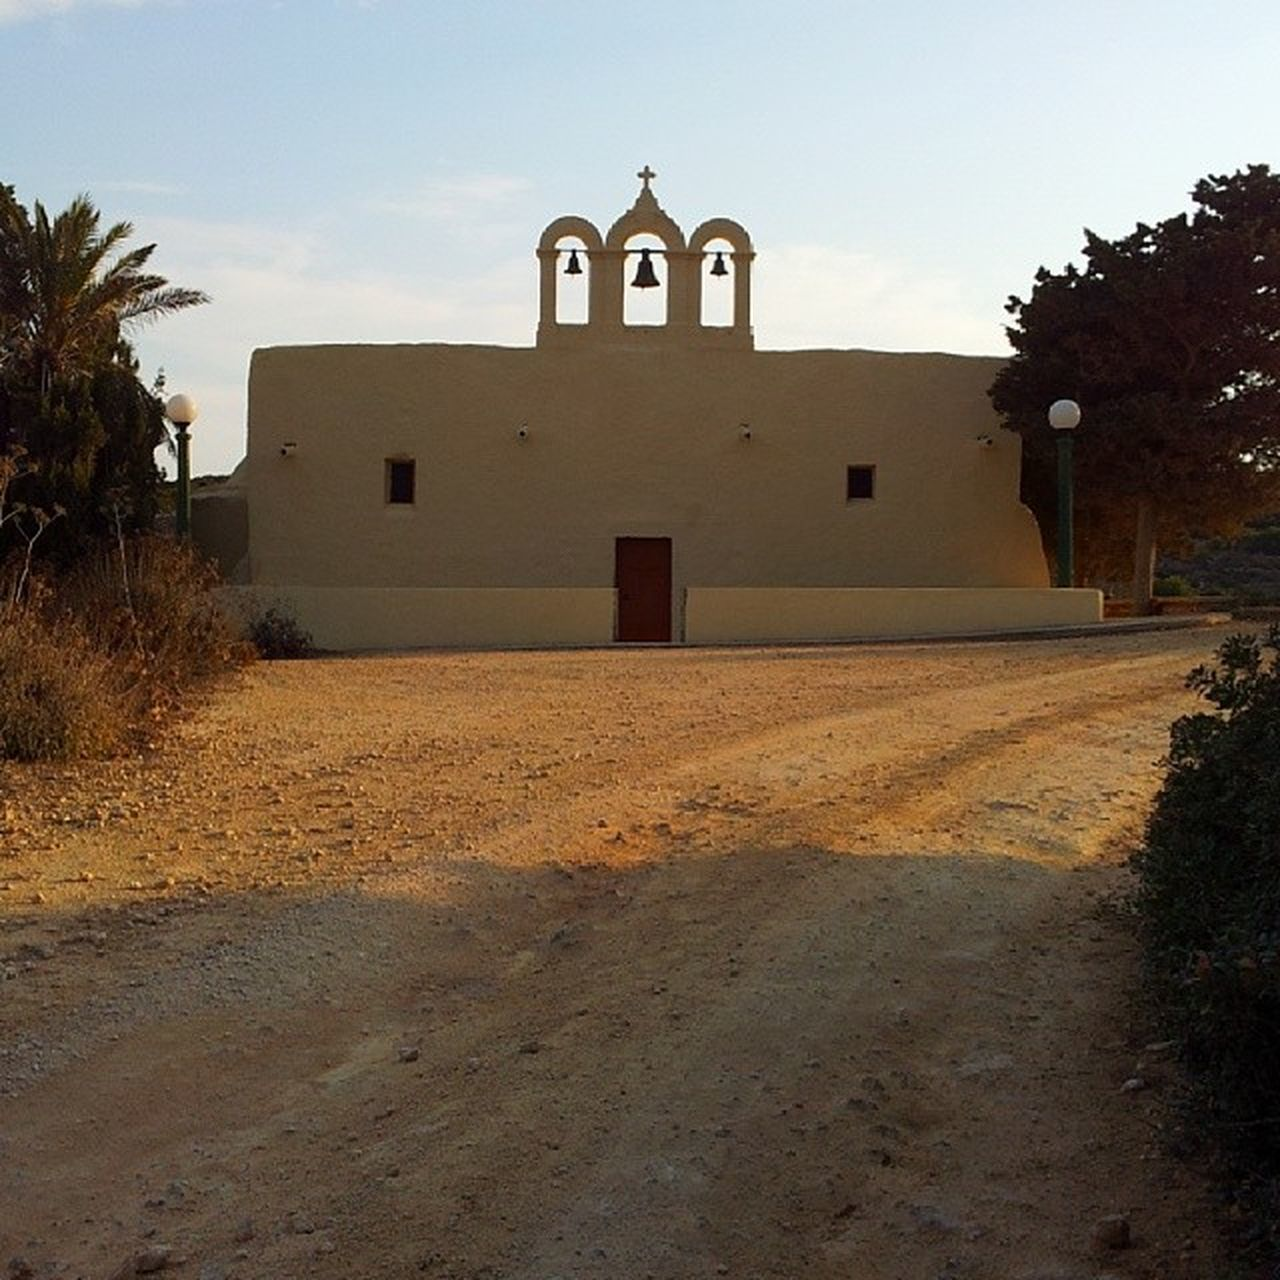 religion, built structure, architecture, spirituality, place of worship, building exterior, cross, no people, sky, day, outdoors